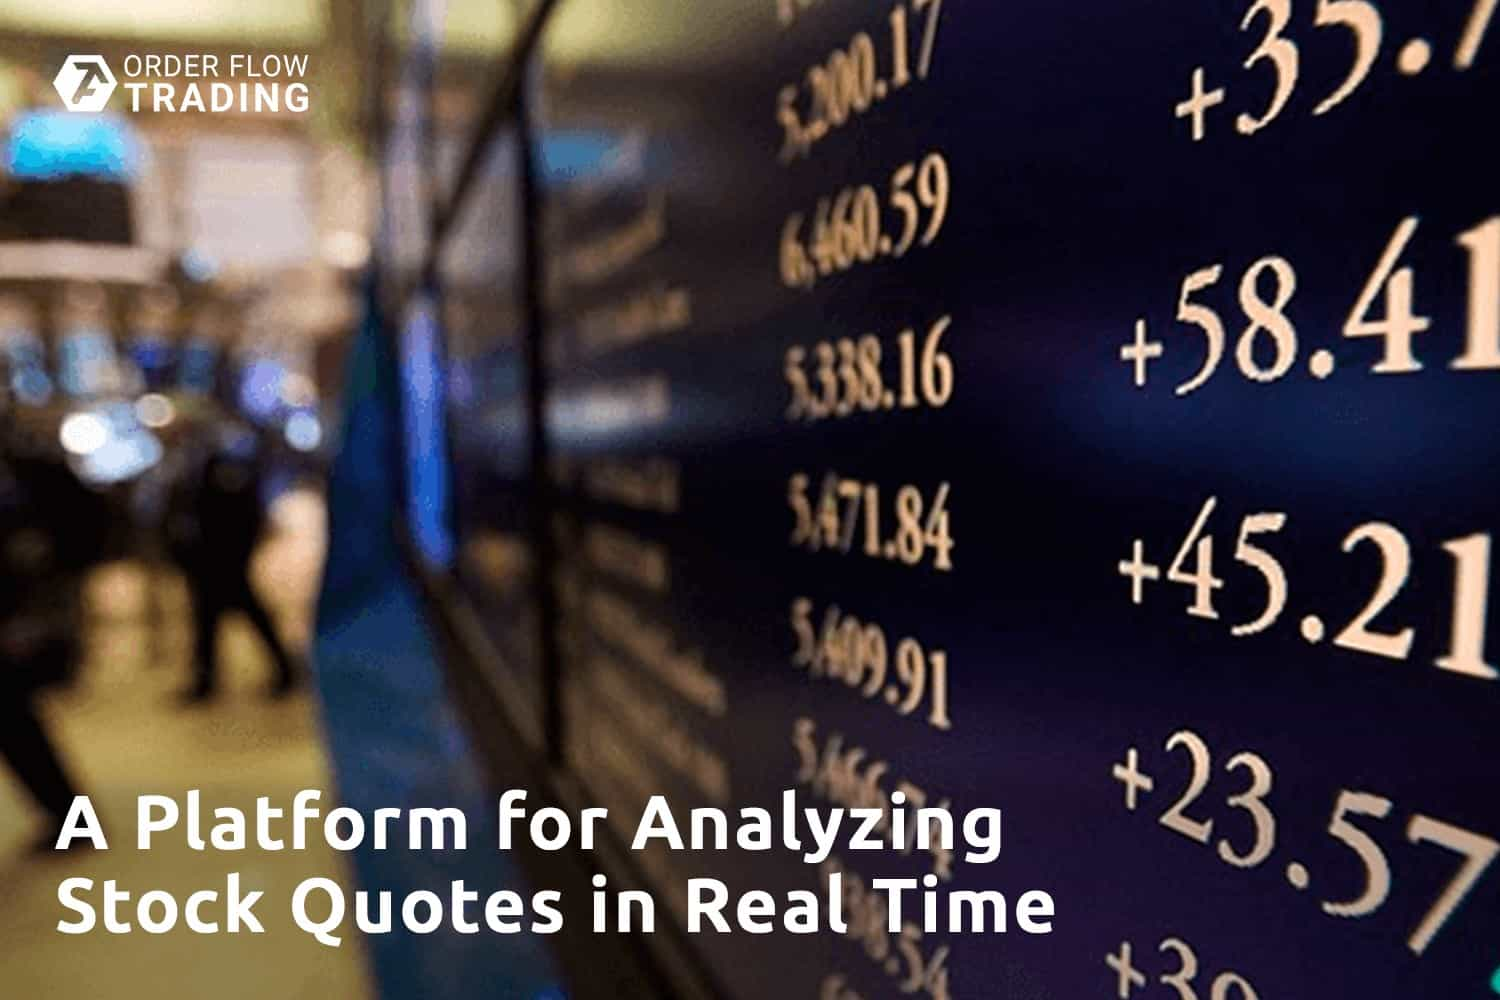 Platform for analyzing stock quotes in real time